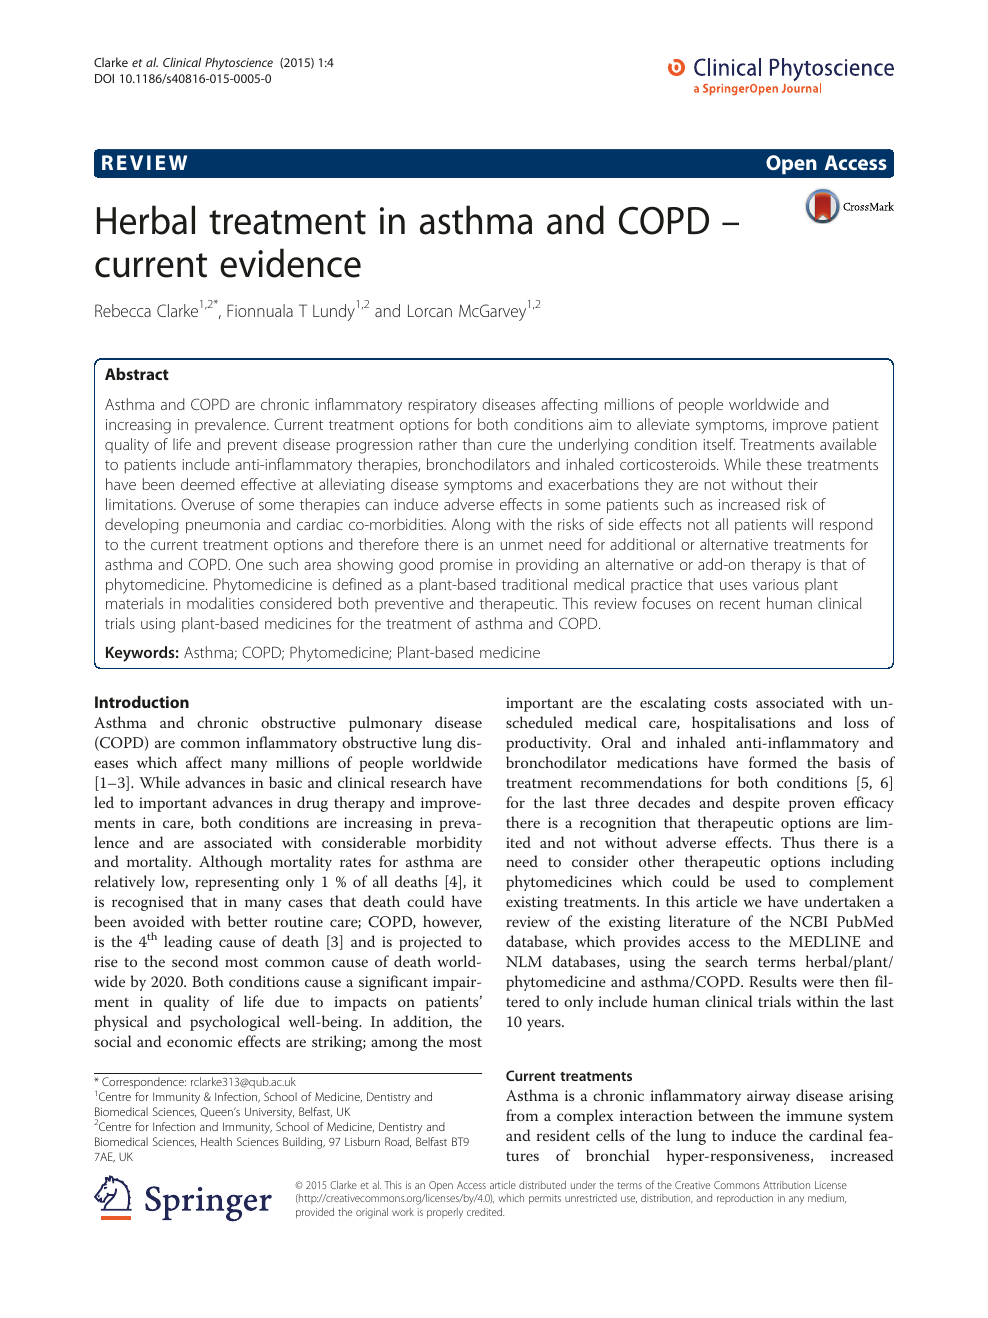 Herbal treatment in asthma and COPD – current evidence